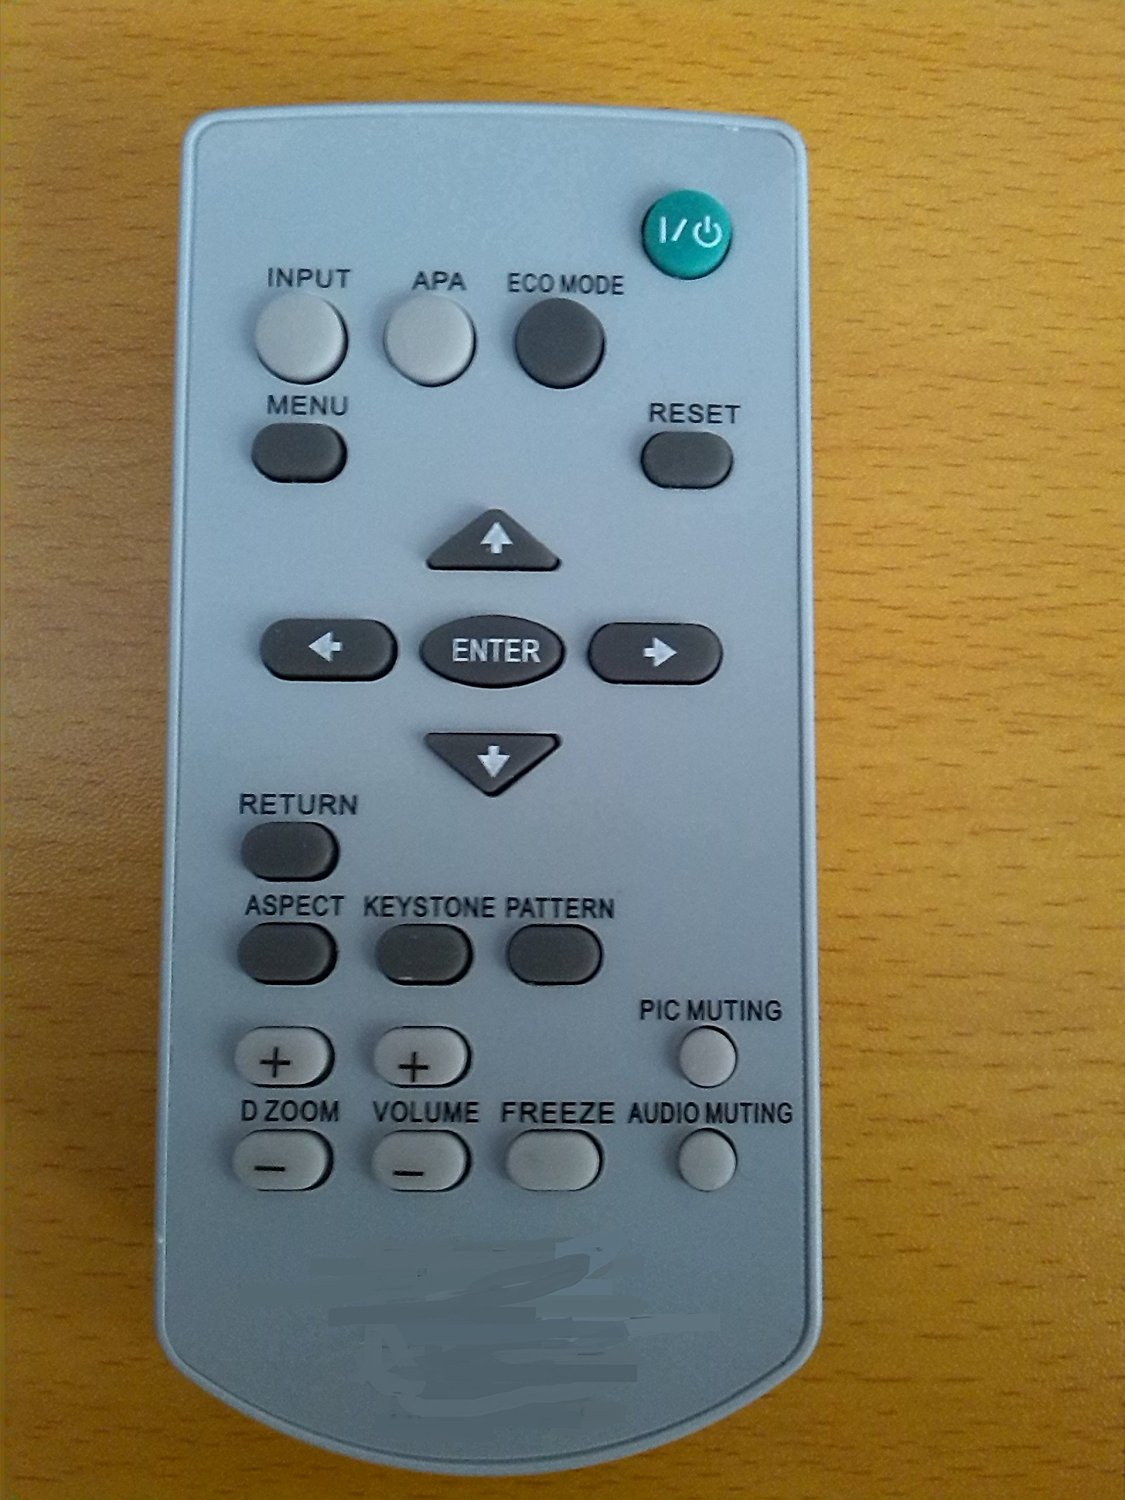 Brand New ELECTRON Top Quality General Universal Compatible Replacement Projector Remote Control Fit For SONY VPL-FH31B Projector 199 Days Warranty